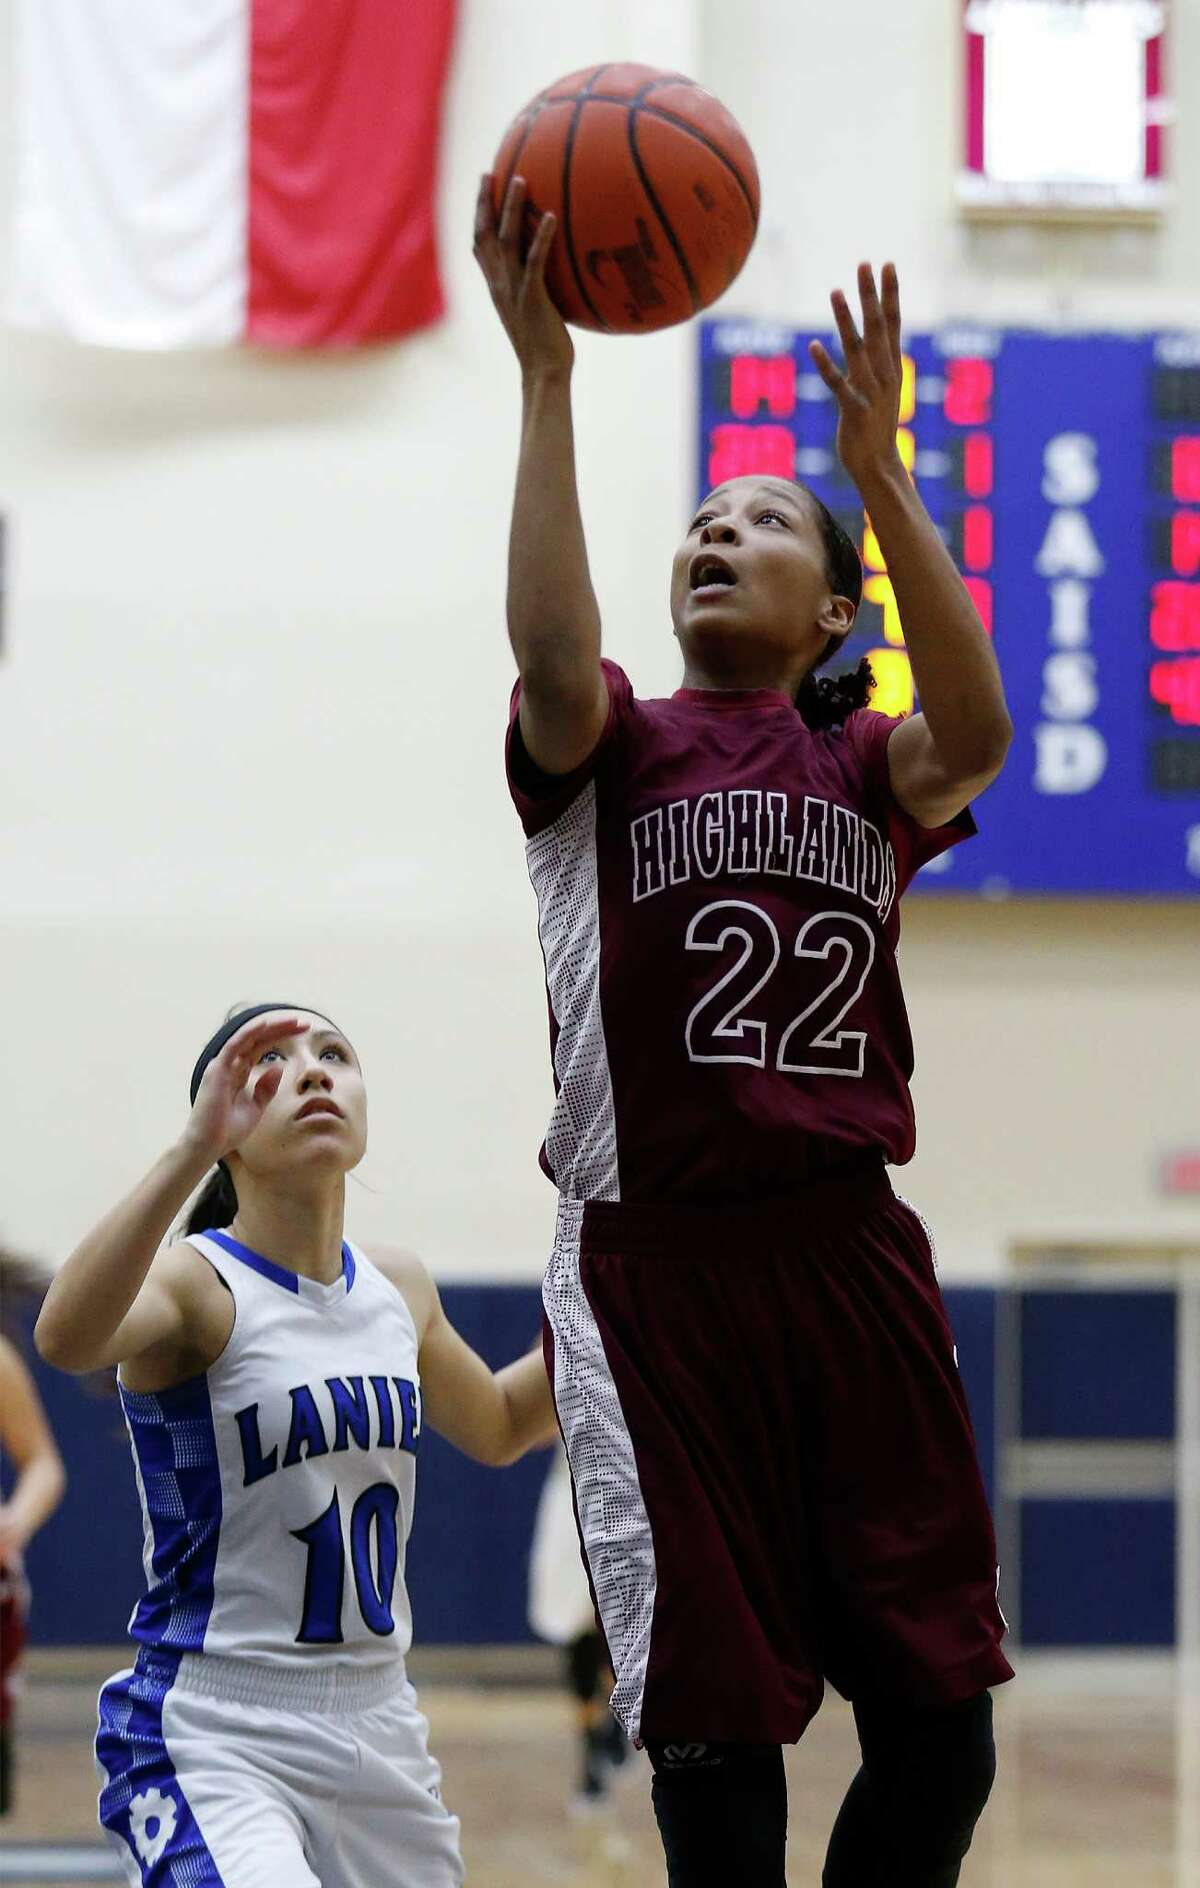 Highlands' Aaliyah Prince (22) attempts a layup against Lanier's Esmi Garza (10) in January action.